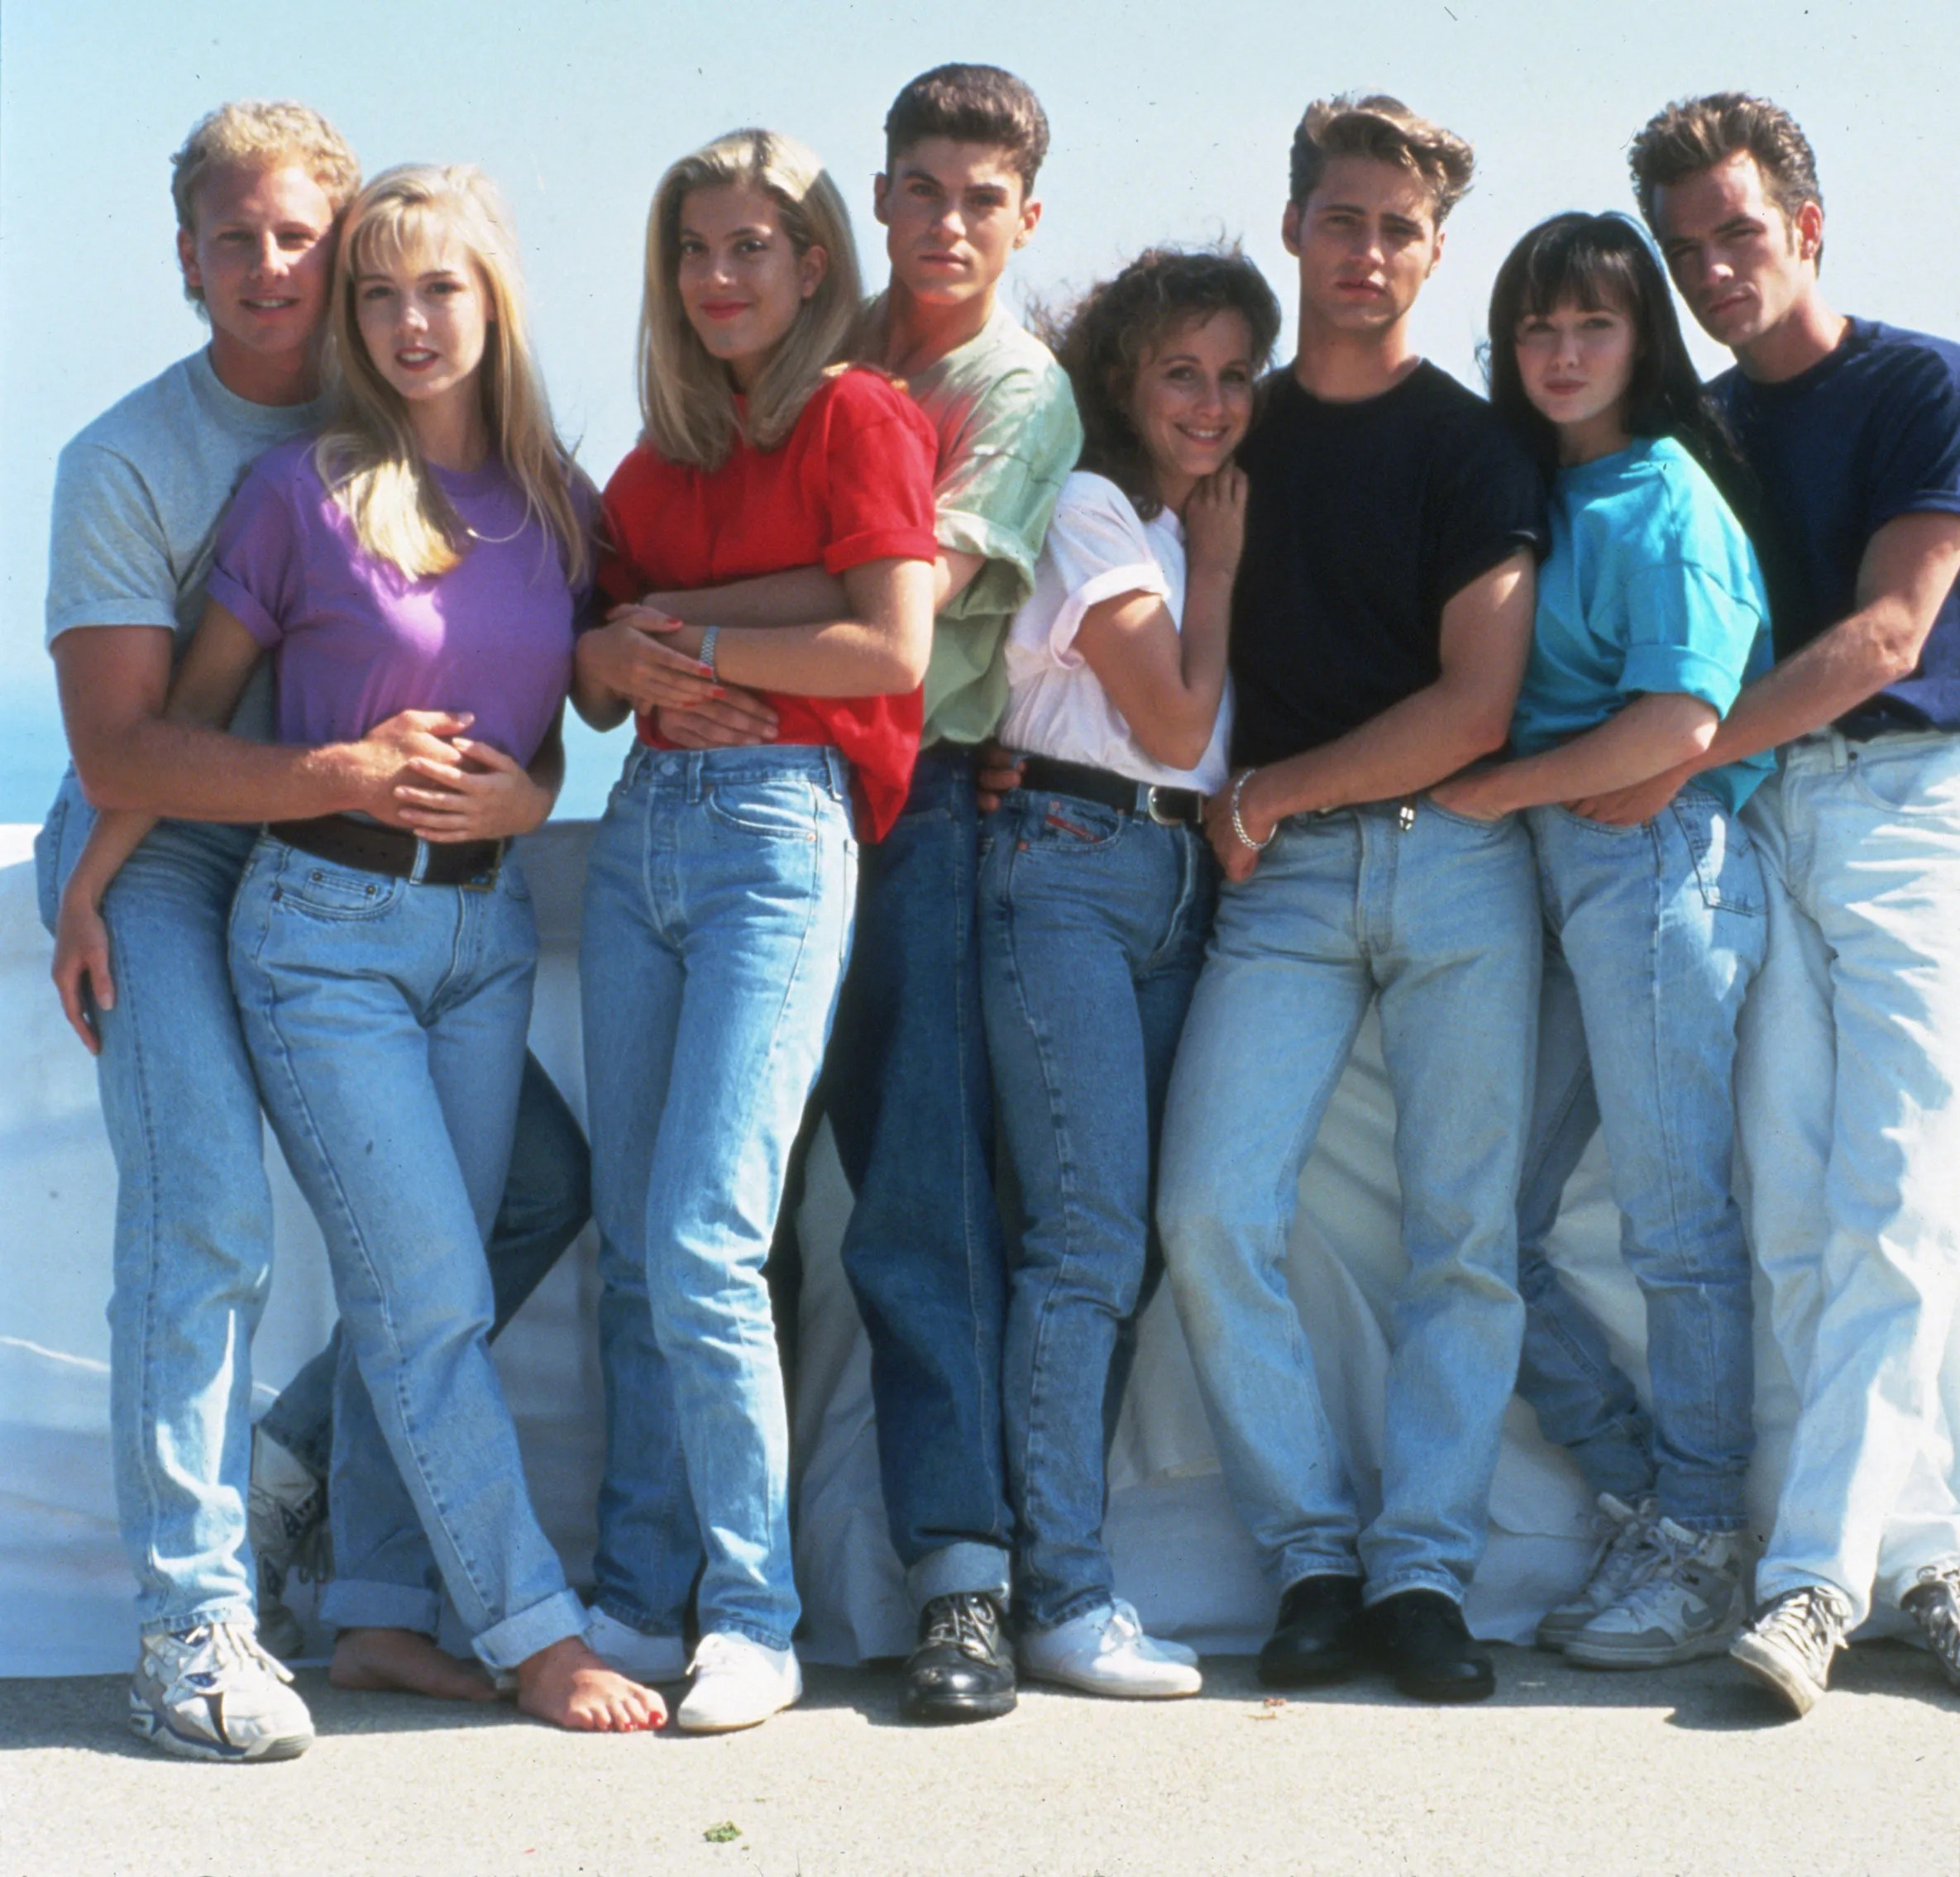 Klamotten 90er Jahre The Best New Jeans Inspired By 90s And Noughties Tv Shows